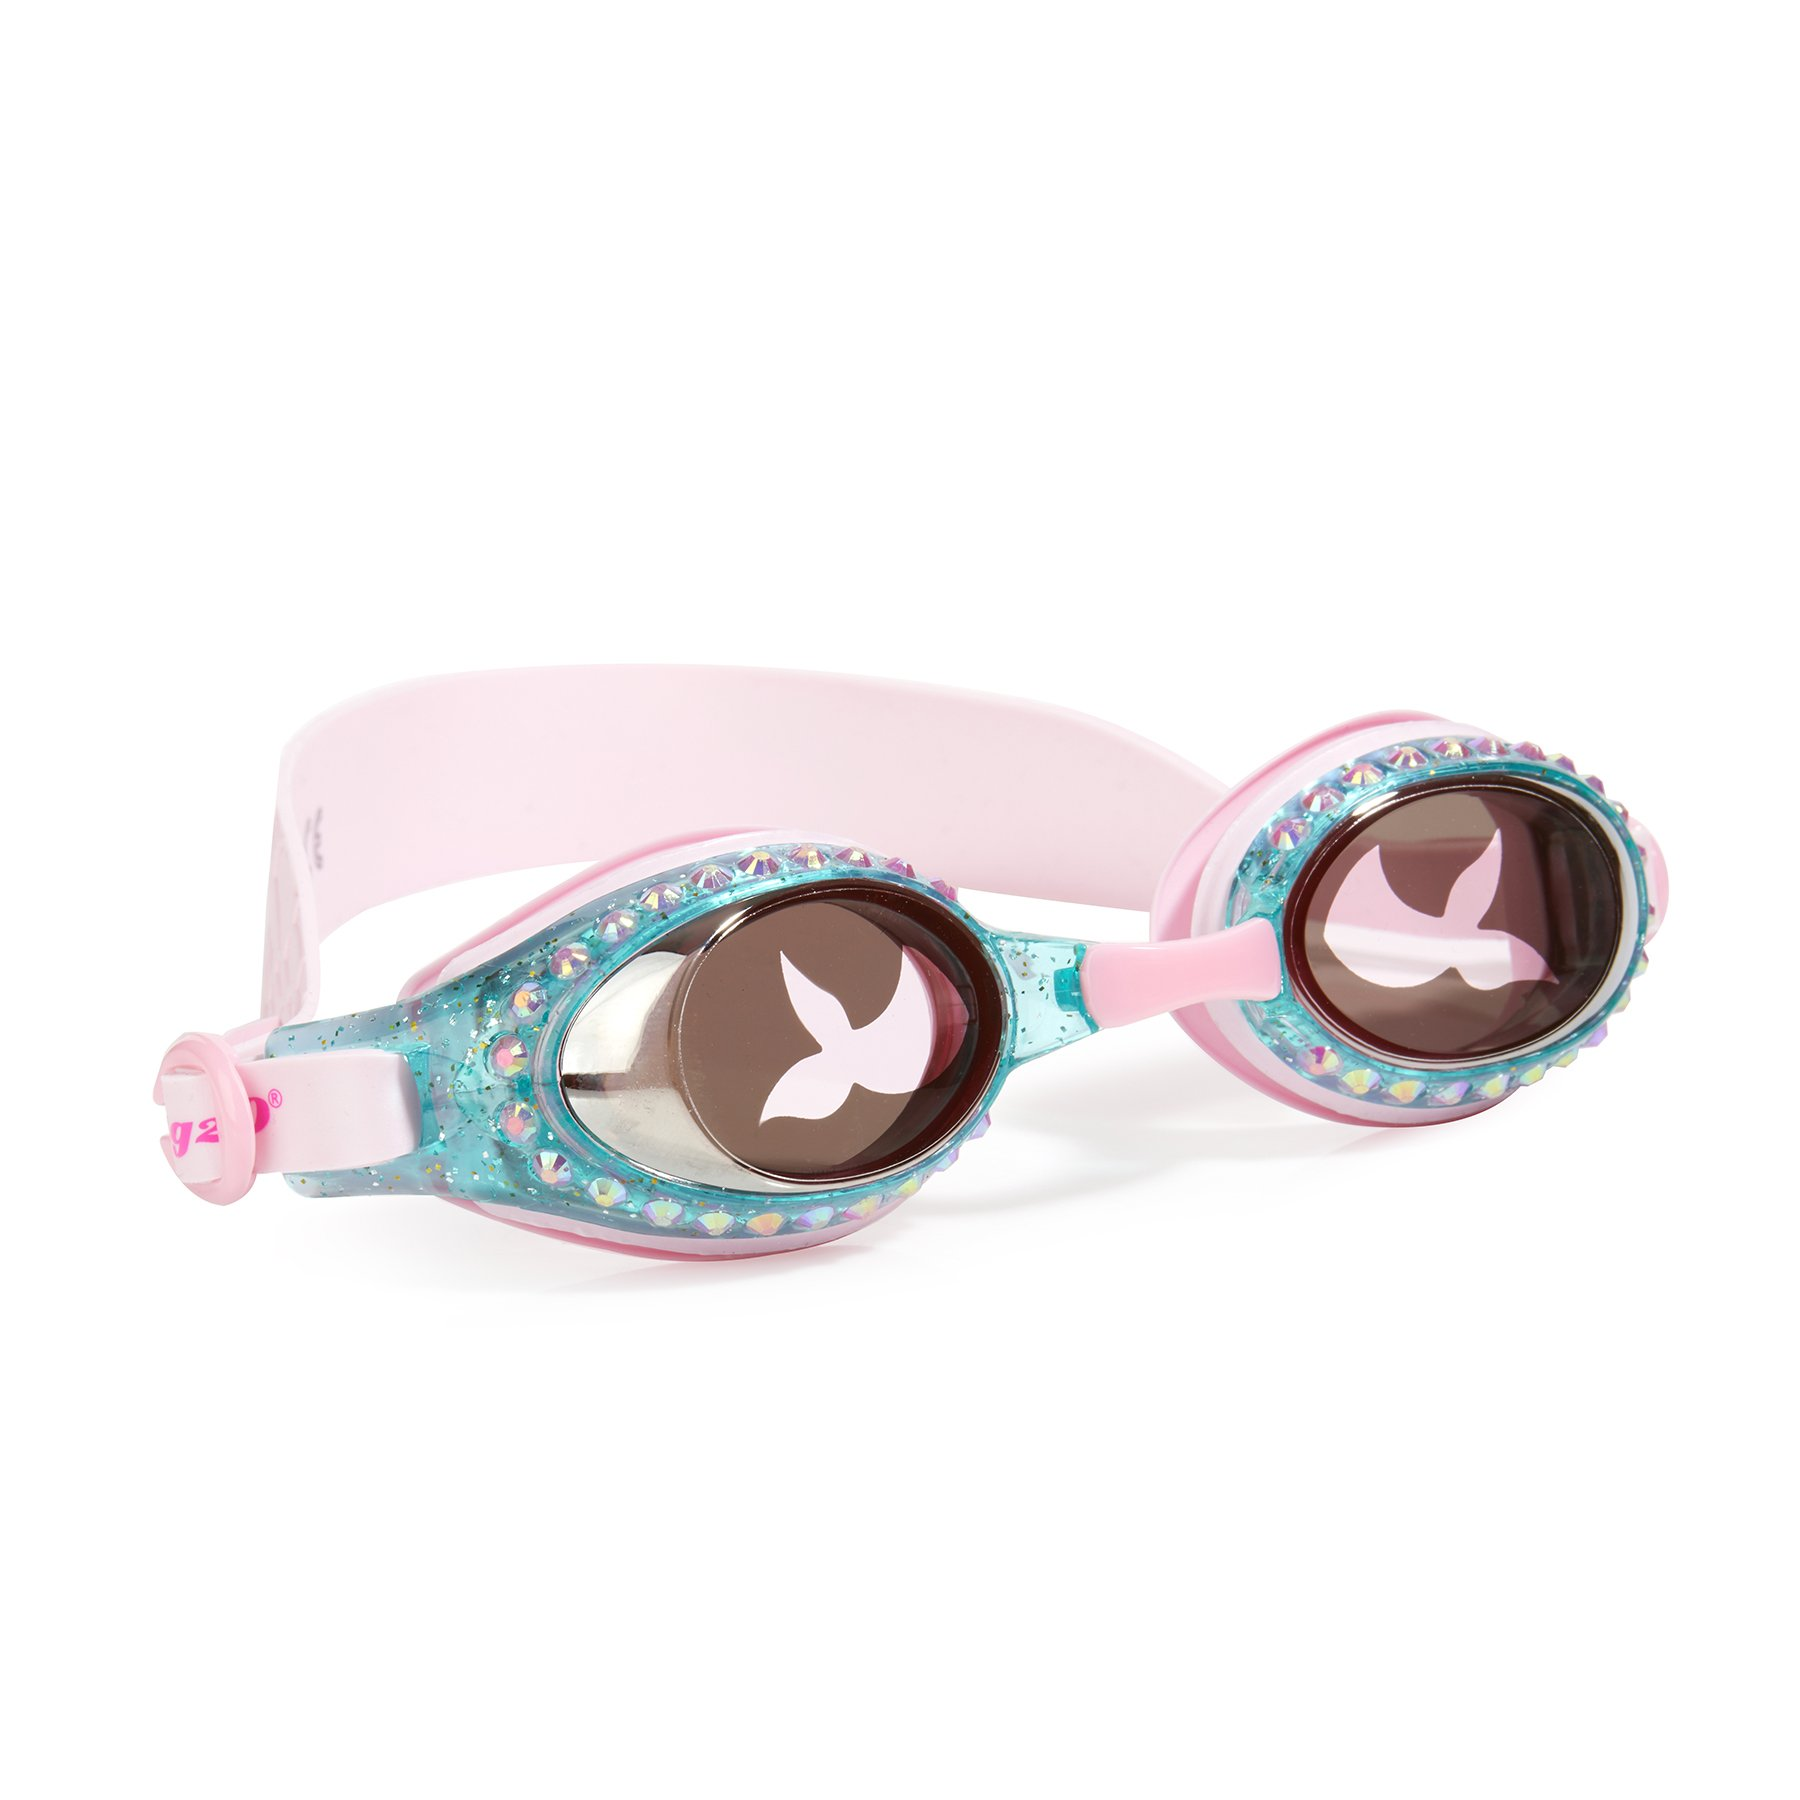 Bling 2o Swimming Goggles Mermaid Jewel